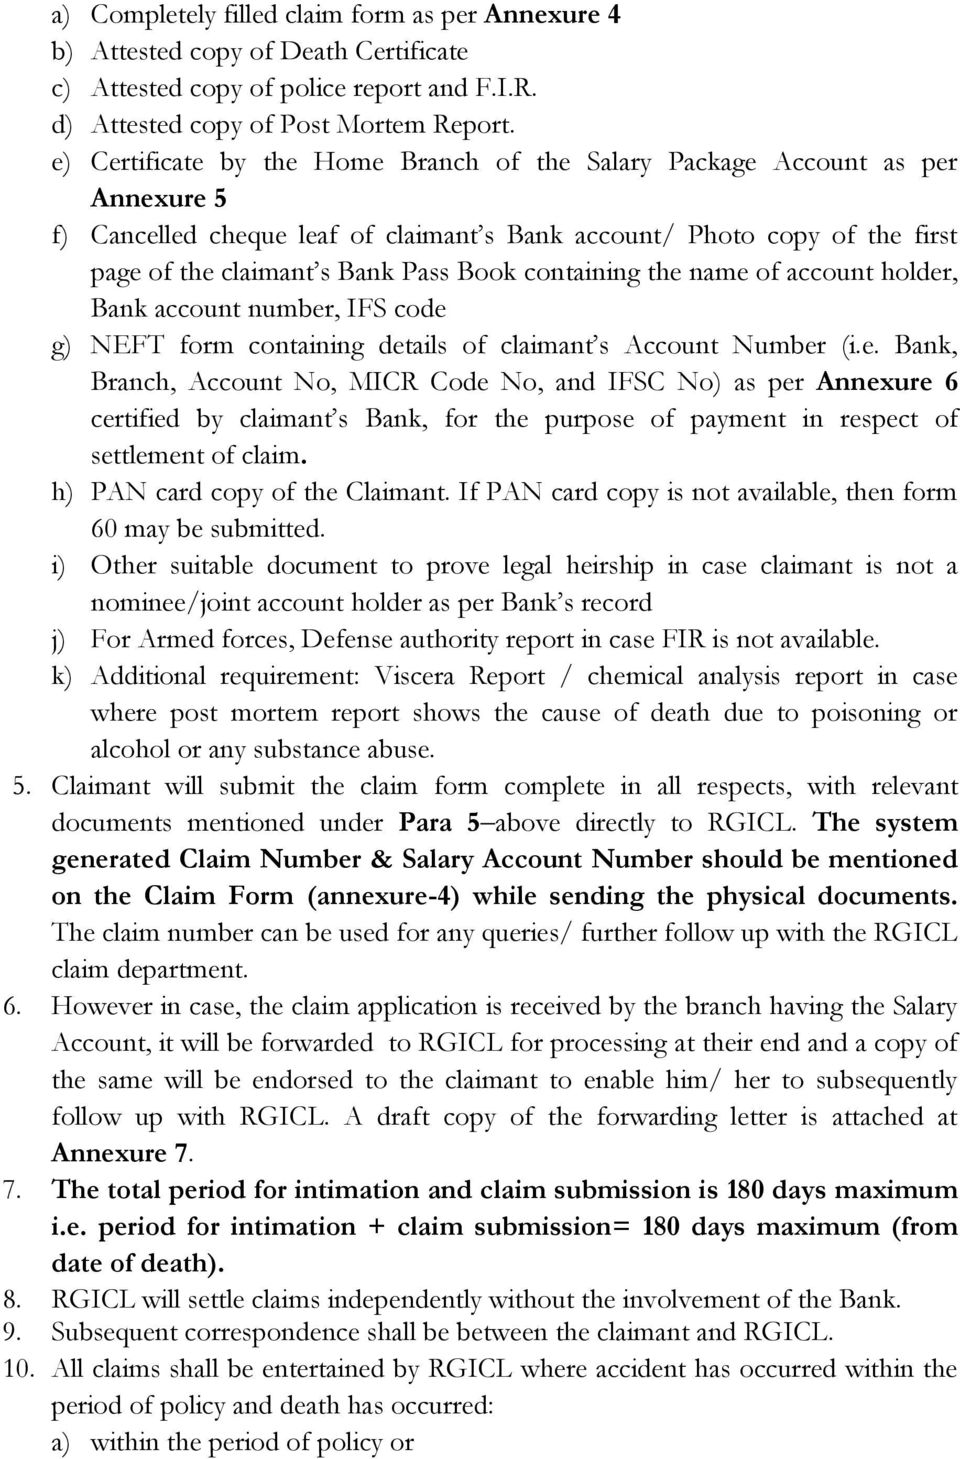 containing the name of account holder, Bank account number, IFS code g) NEFT form containing details of claimant s Account Number (i.e. Bank, Branch, Account No, MICR Code No, and IFSC No) as per Annexure 6 certified by claimant s Bank, for the purpose of payment in respect of settlement of claim.